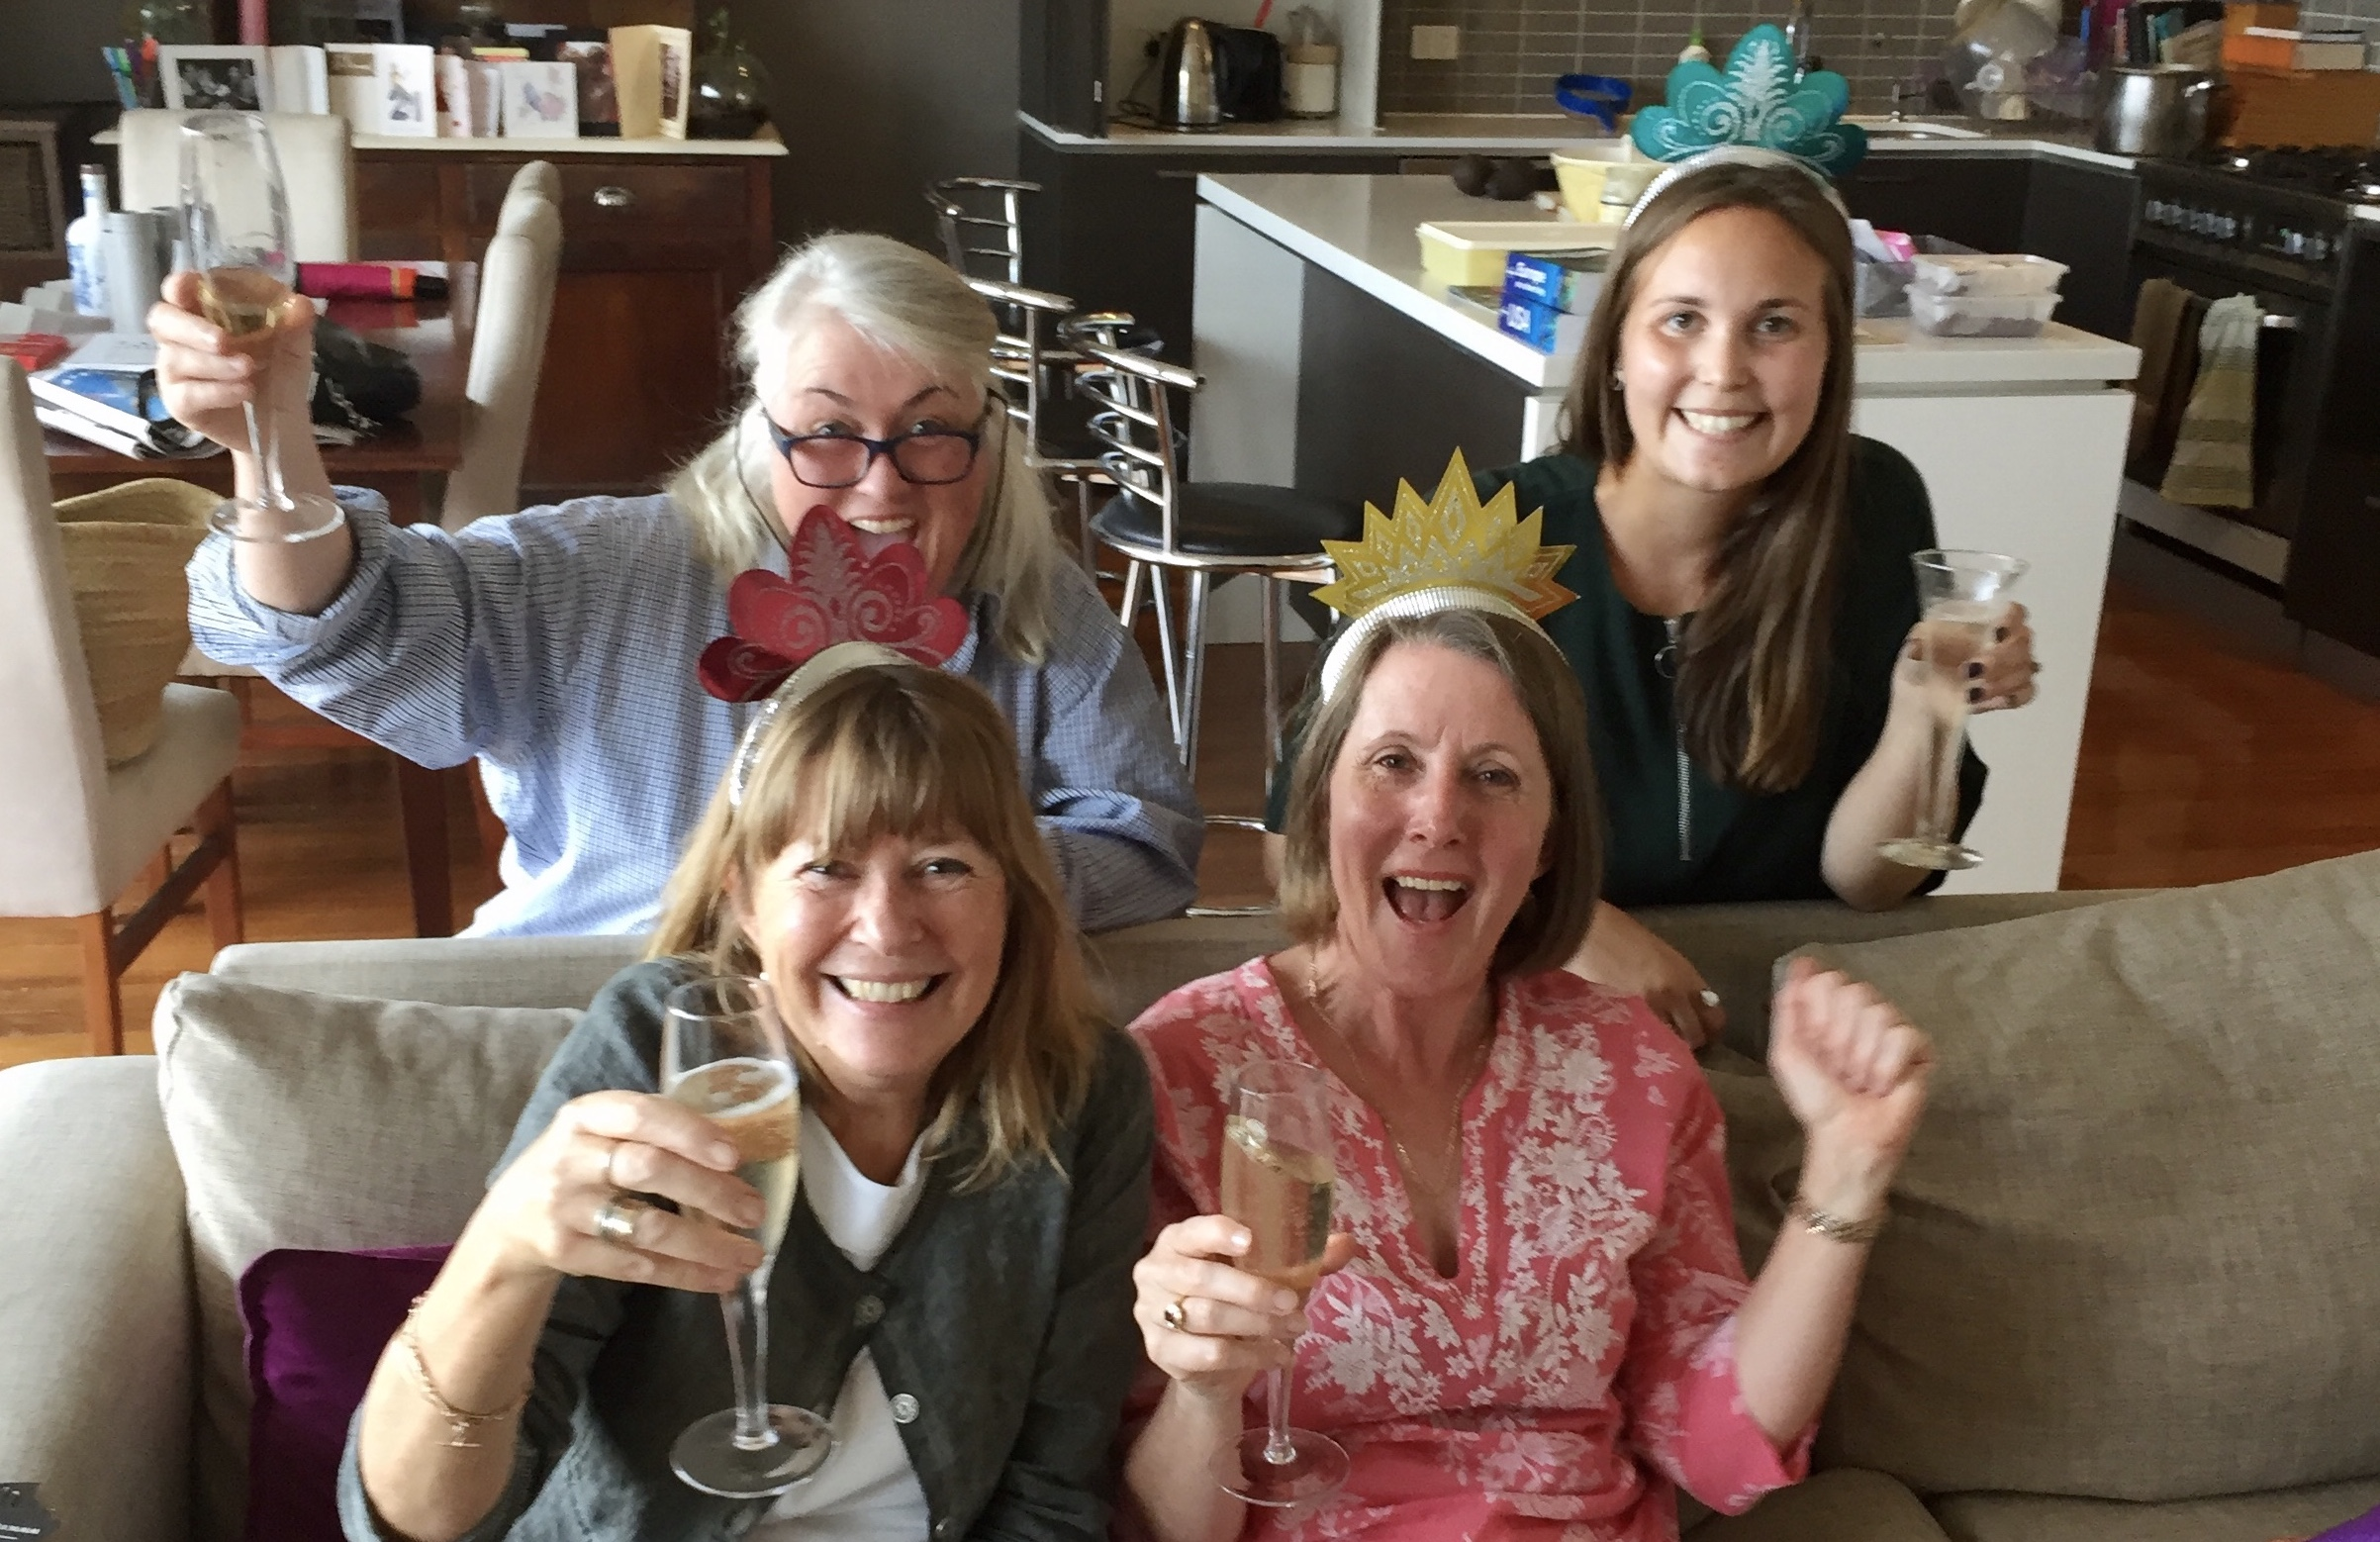 Four women in tiaras on a couch holding glasses of champagne